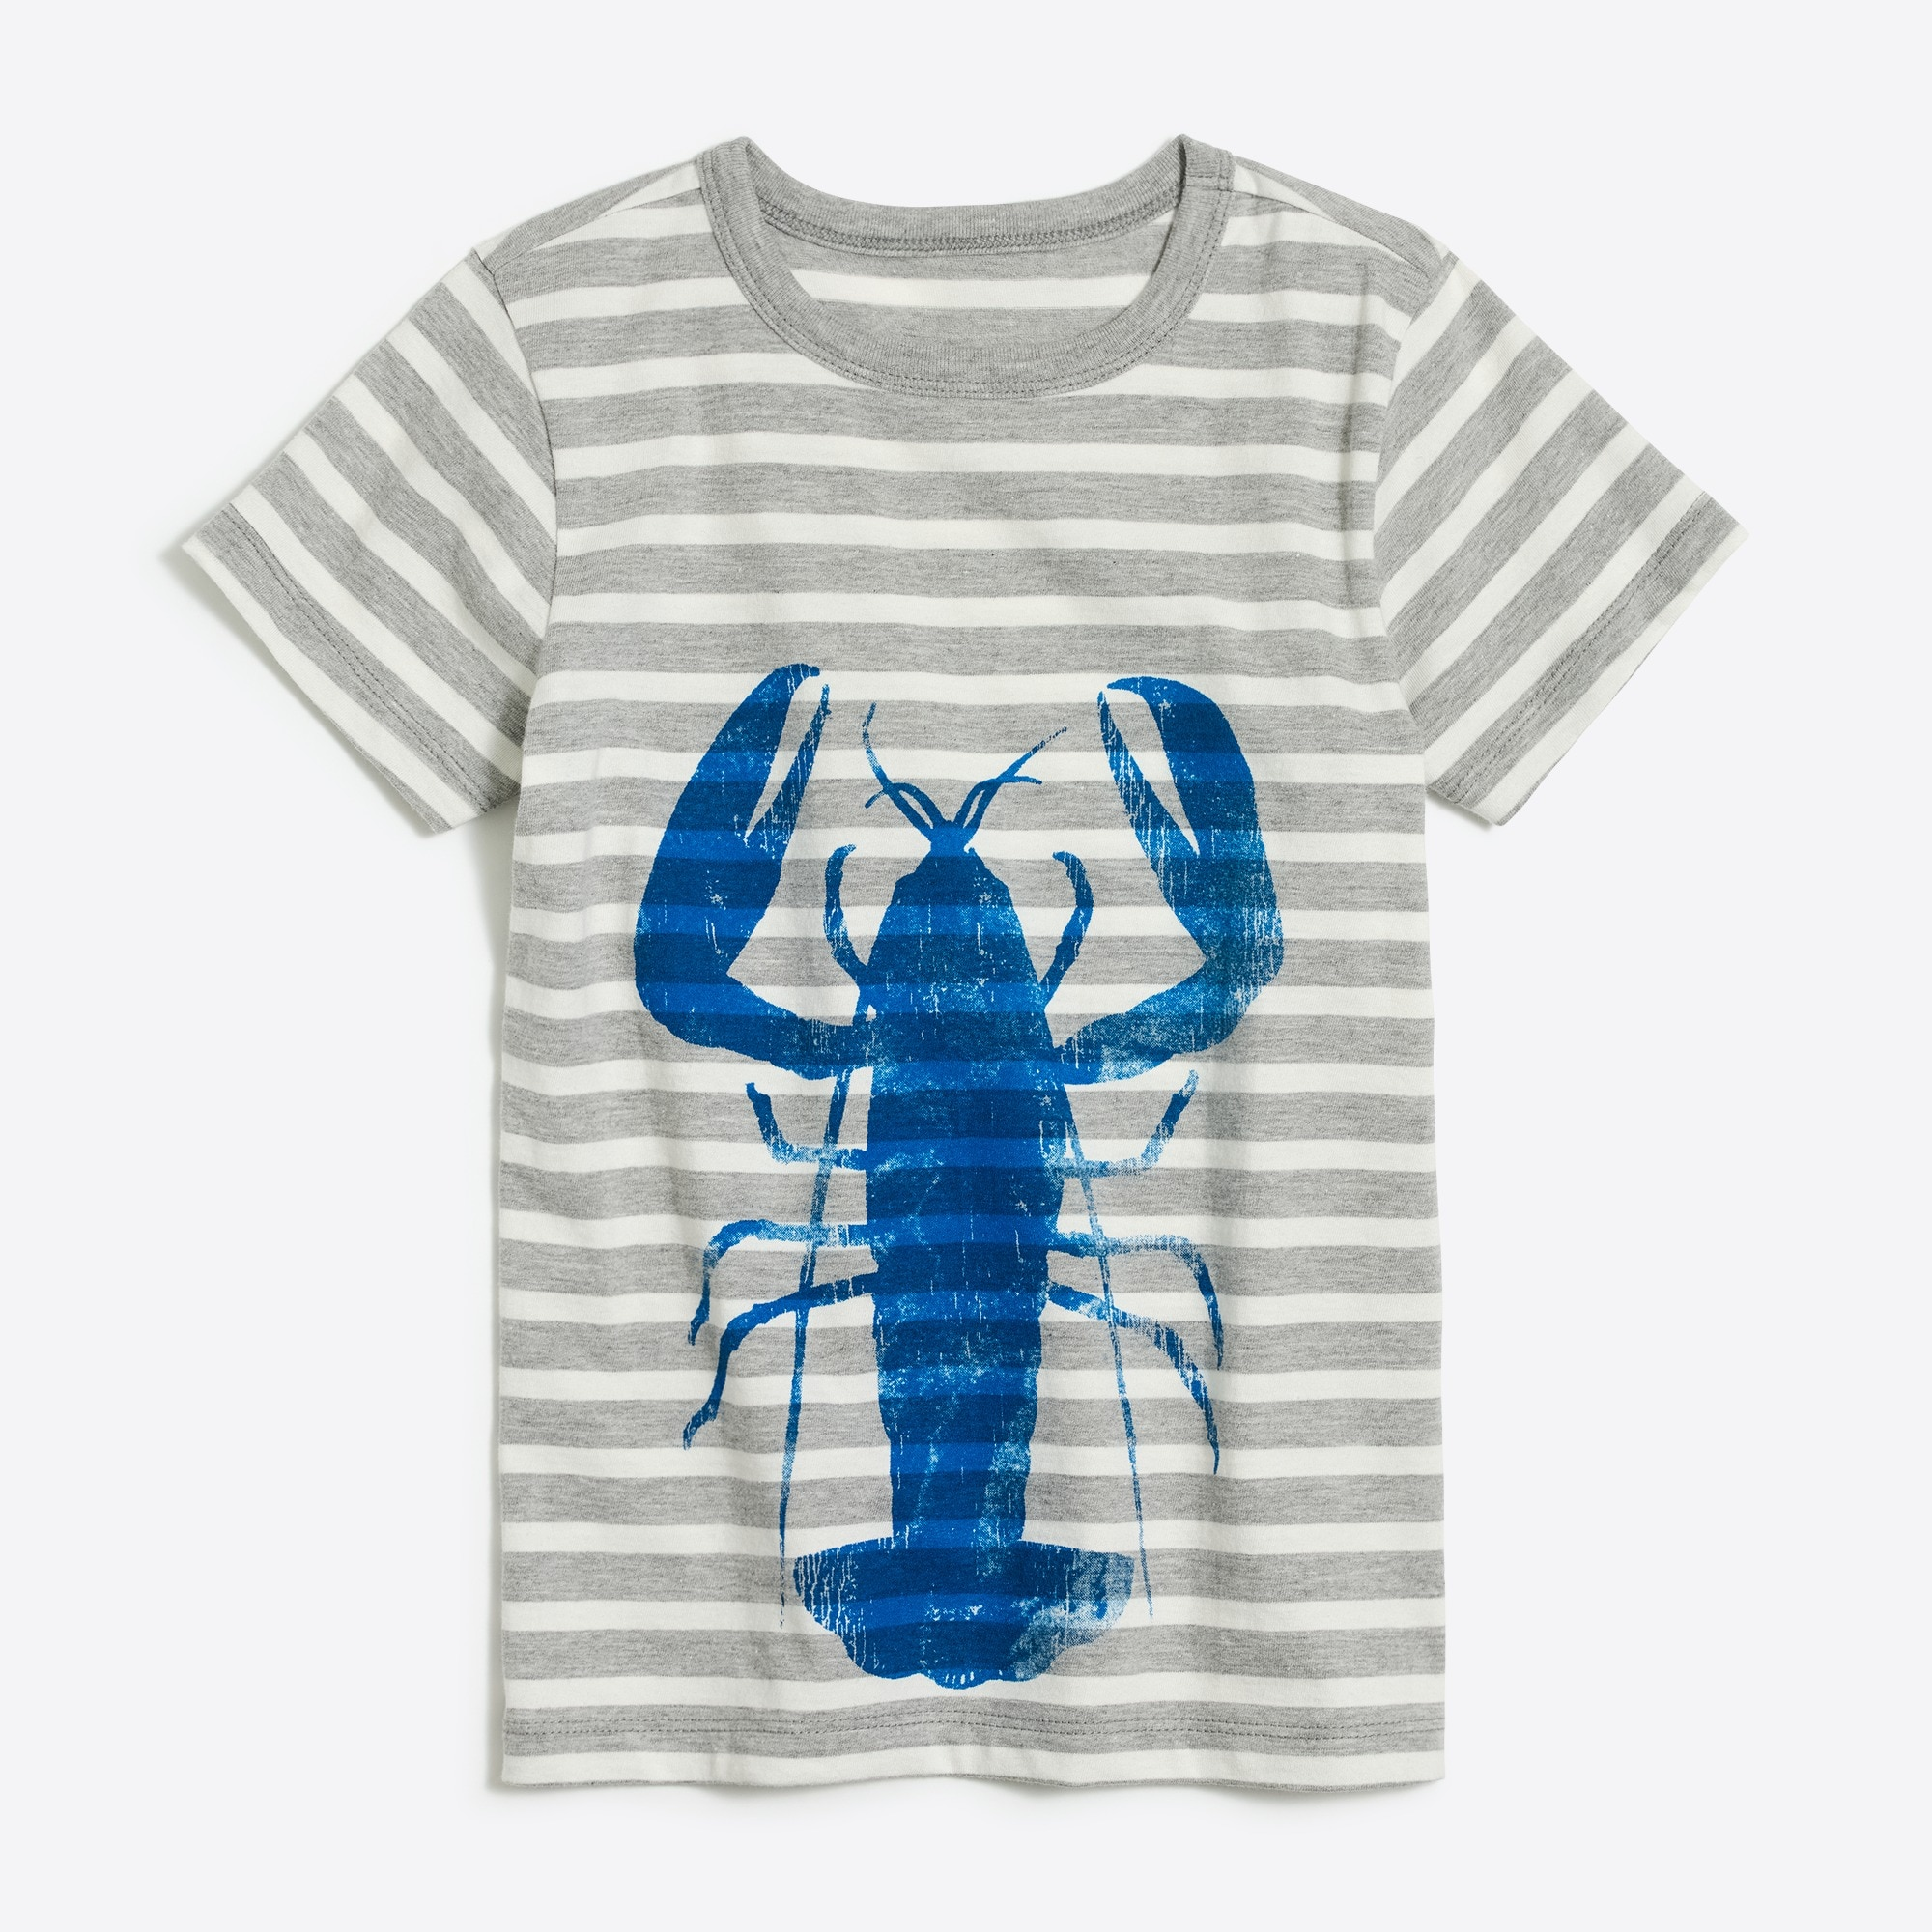 Boys' short-sleeve lobster graphic T-shirt factoryboys knits & t-shirts c